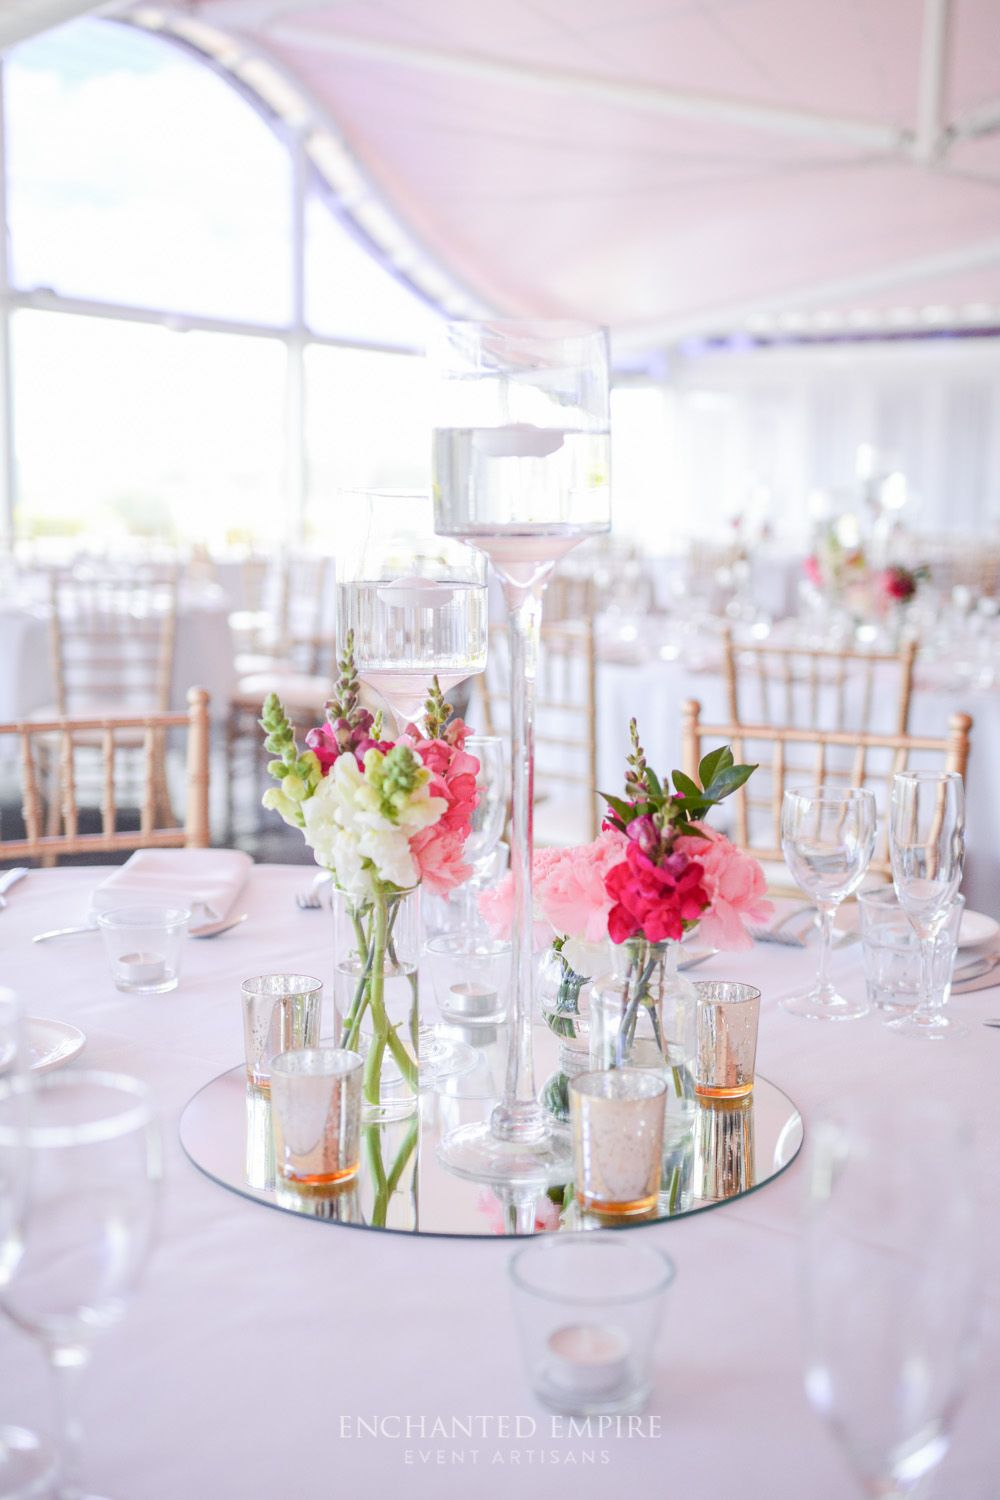 This wedding decor was simple and chic. White tablecloths with gold ...